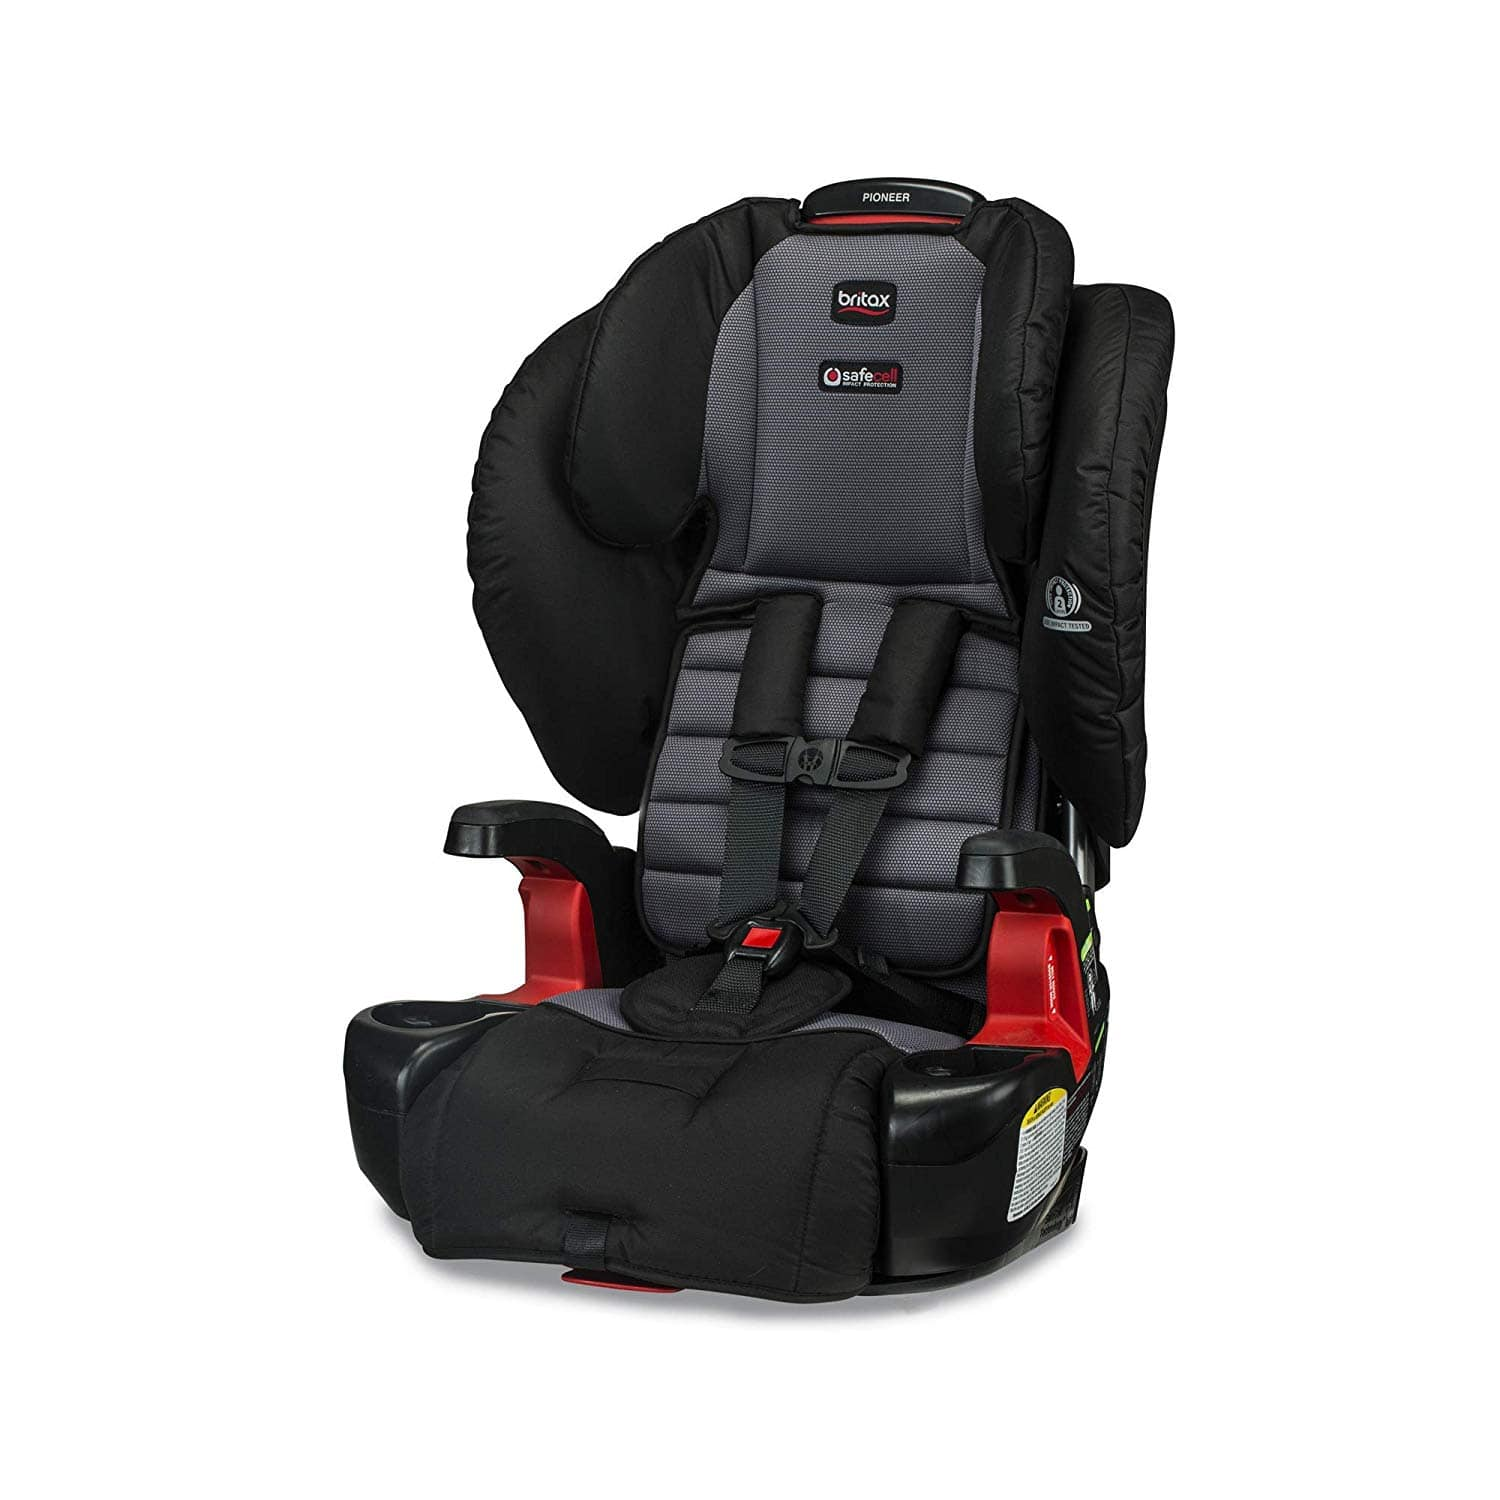 Britax Car Seats Strollers Marathon Click Convertible 196 Pioneer Combination Harness 2 Booster 133 More Free S H